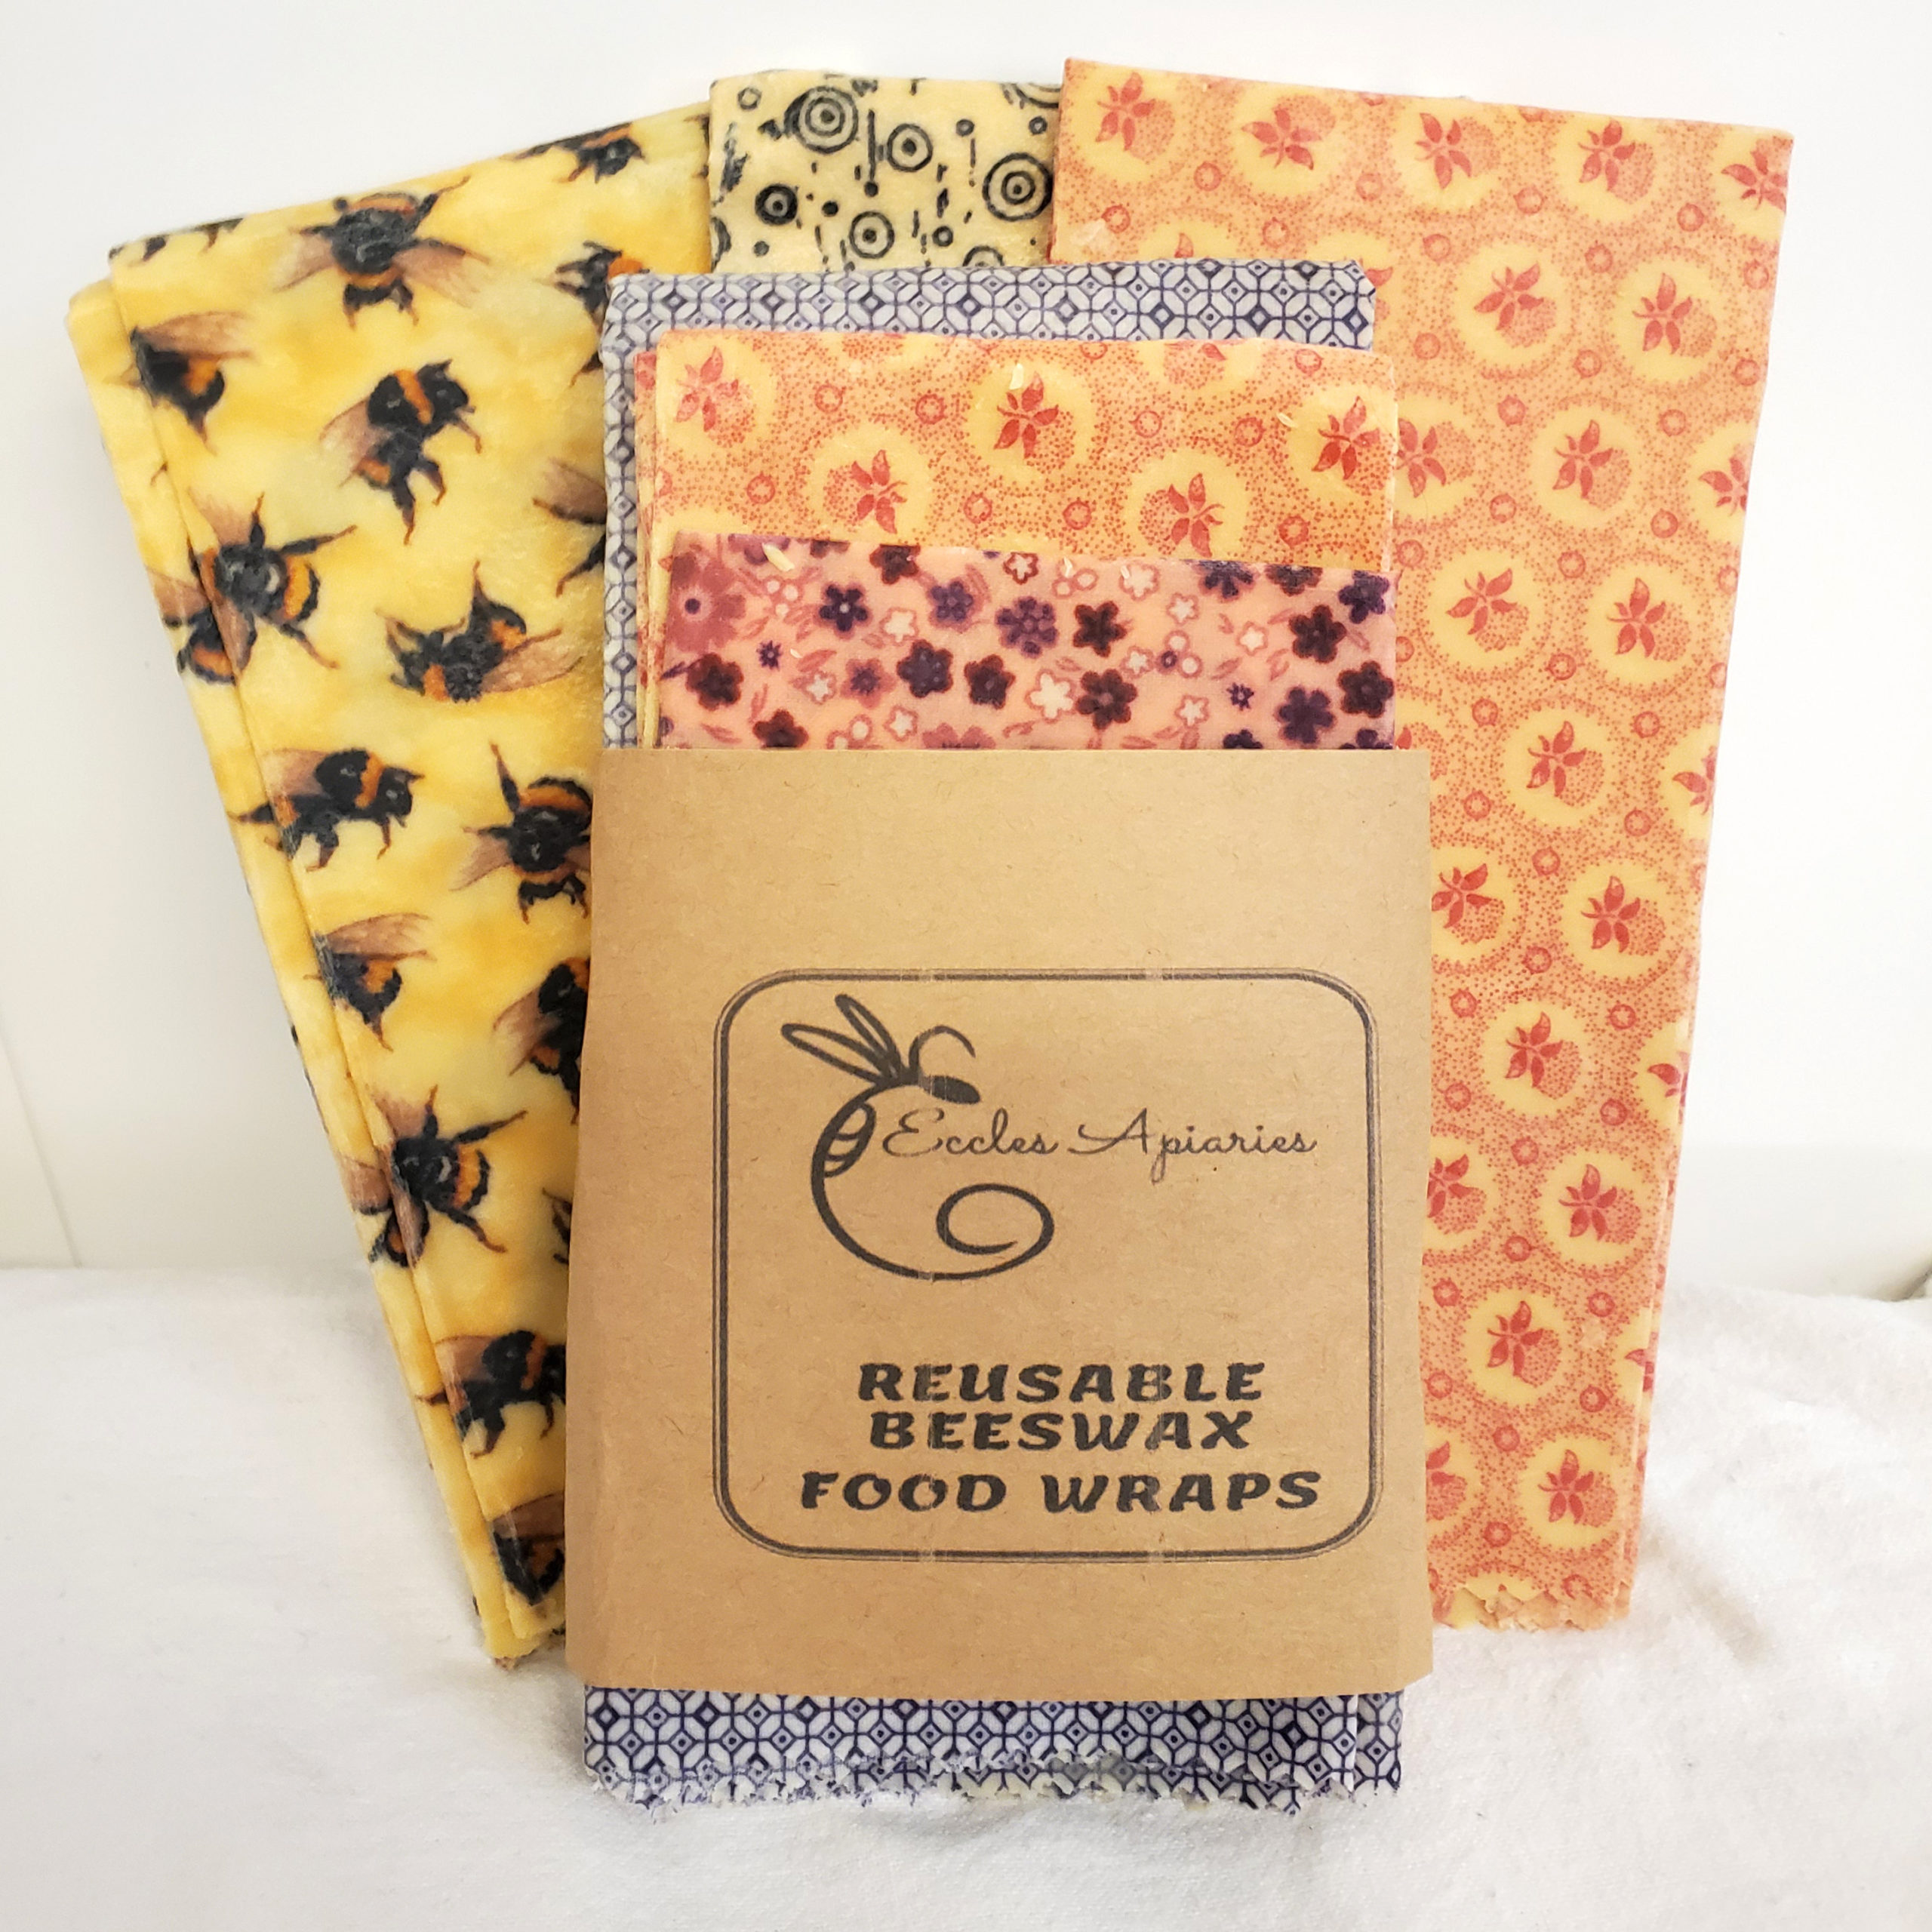 3_Pack_of_Eccles_Apiaries_Reusable_Beeswax_Foodwraps